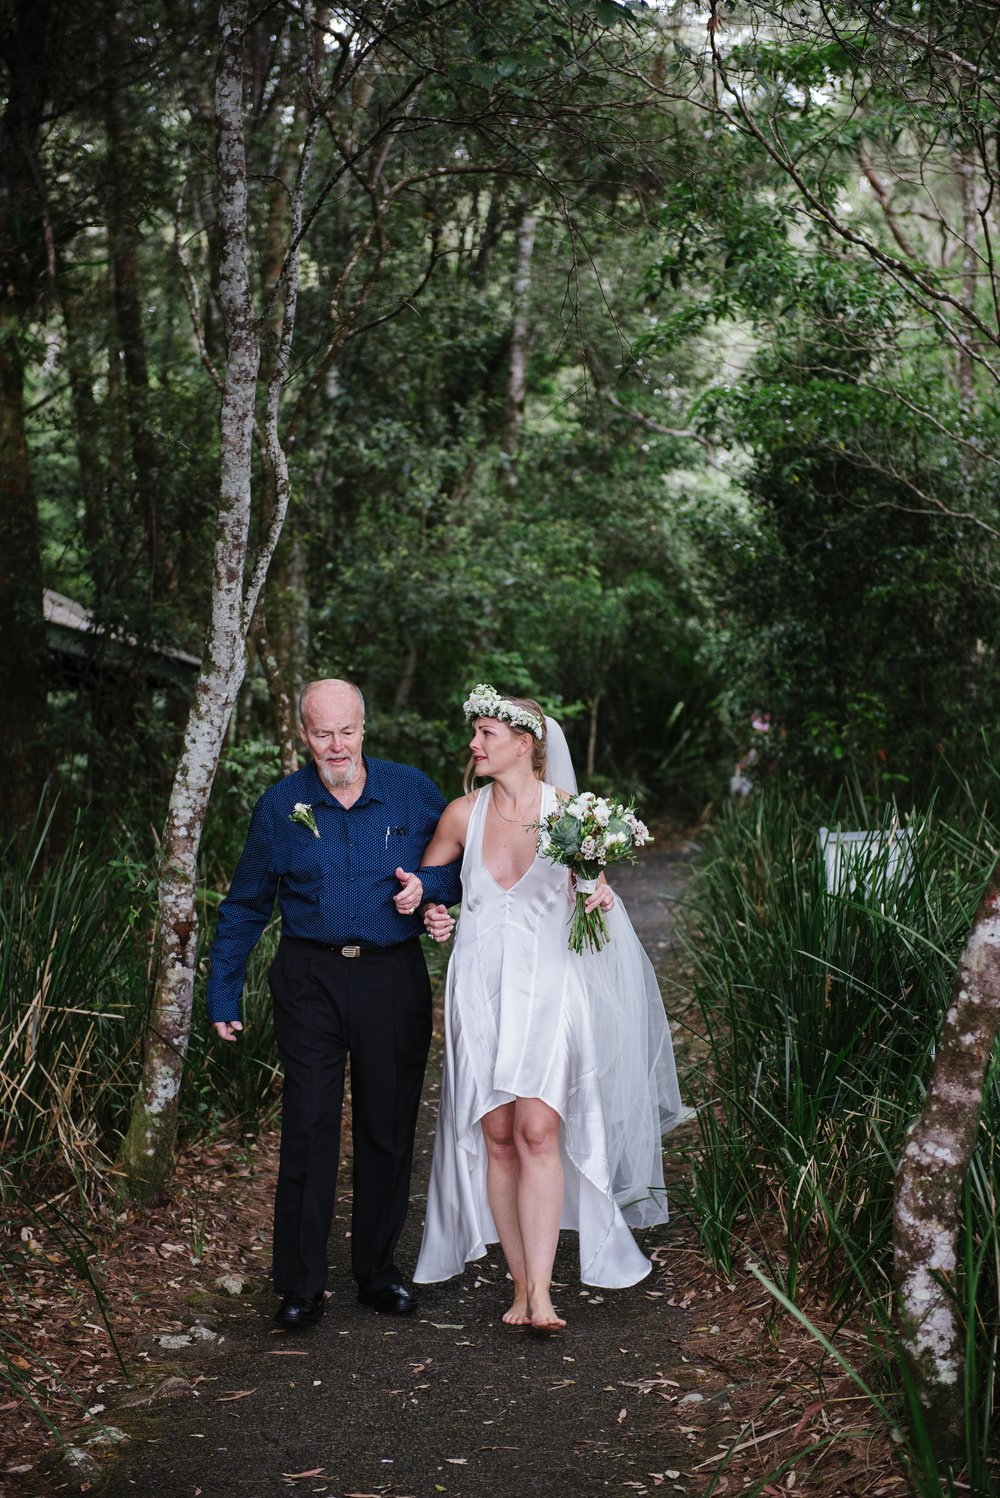 Carla and Luke- wedding photographer, byron bay wedding and family photographer, tweed heads wedding and family photography-151.jpg